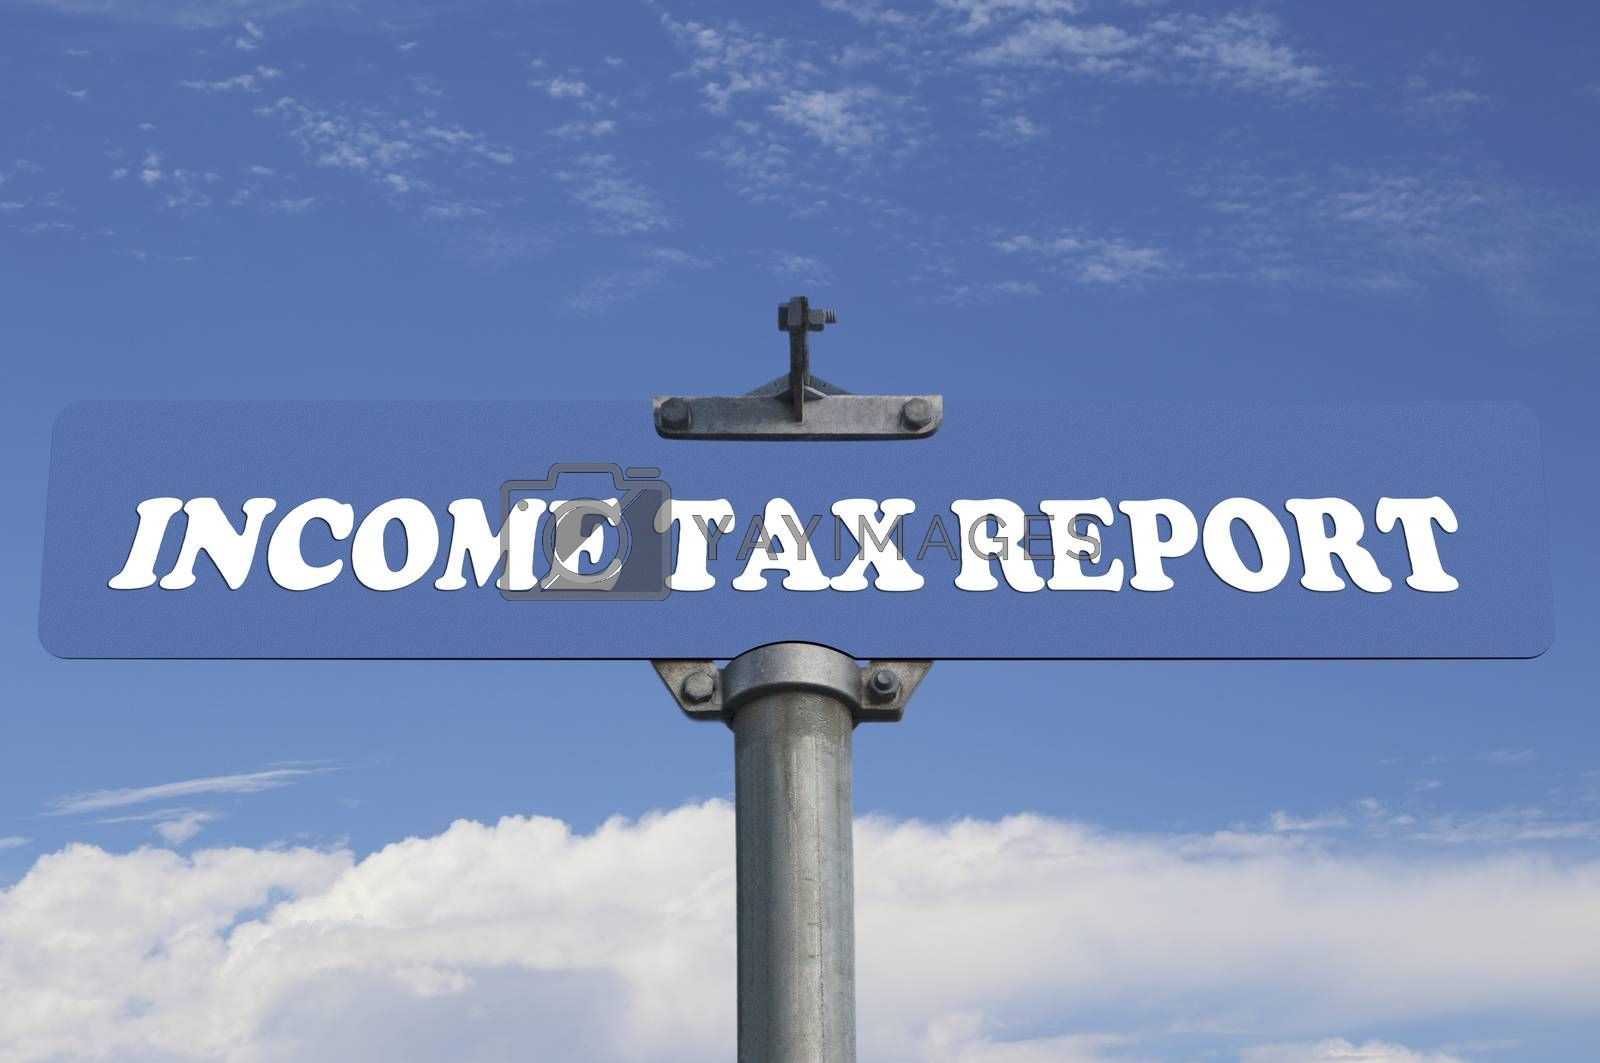 Income tax report road sign